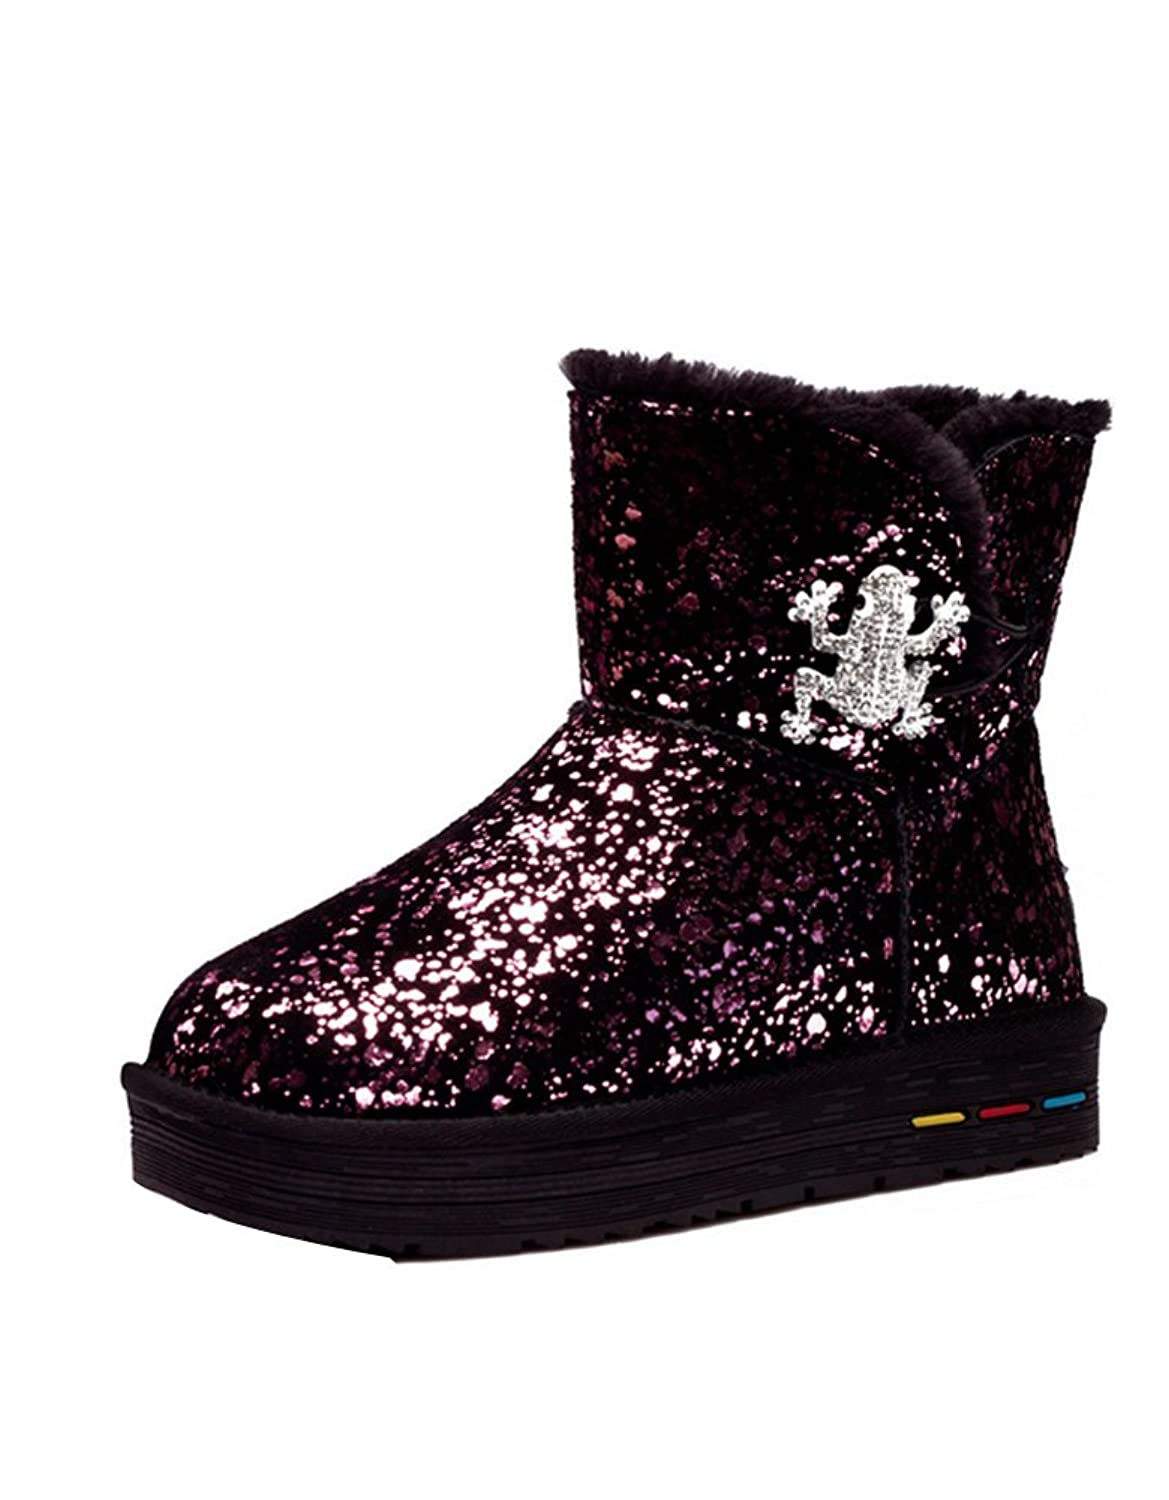 Ashlen Womens Bling Bling Sequin Rhinestone Frog Decor Faux Fur Short Snow  Boot on sale 359a8f62f